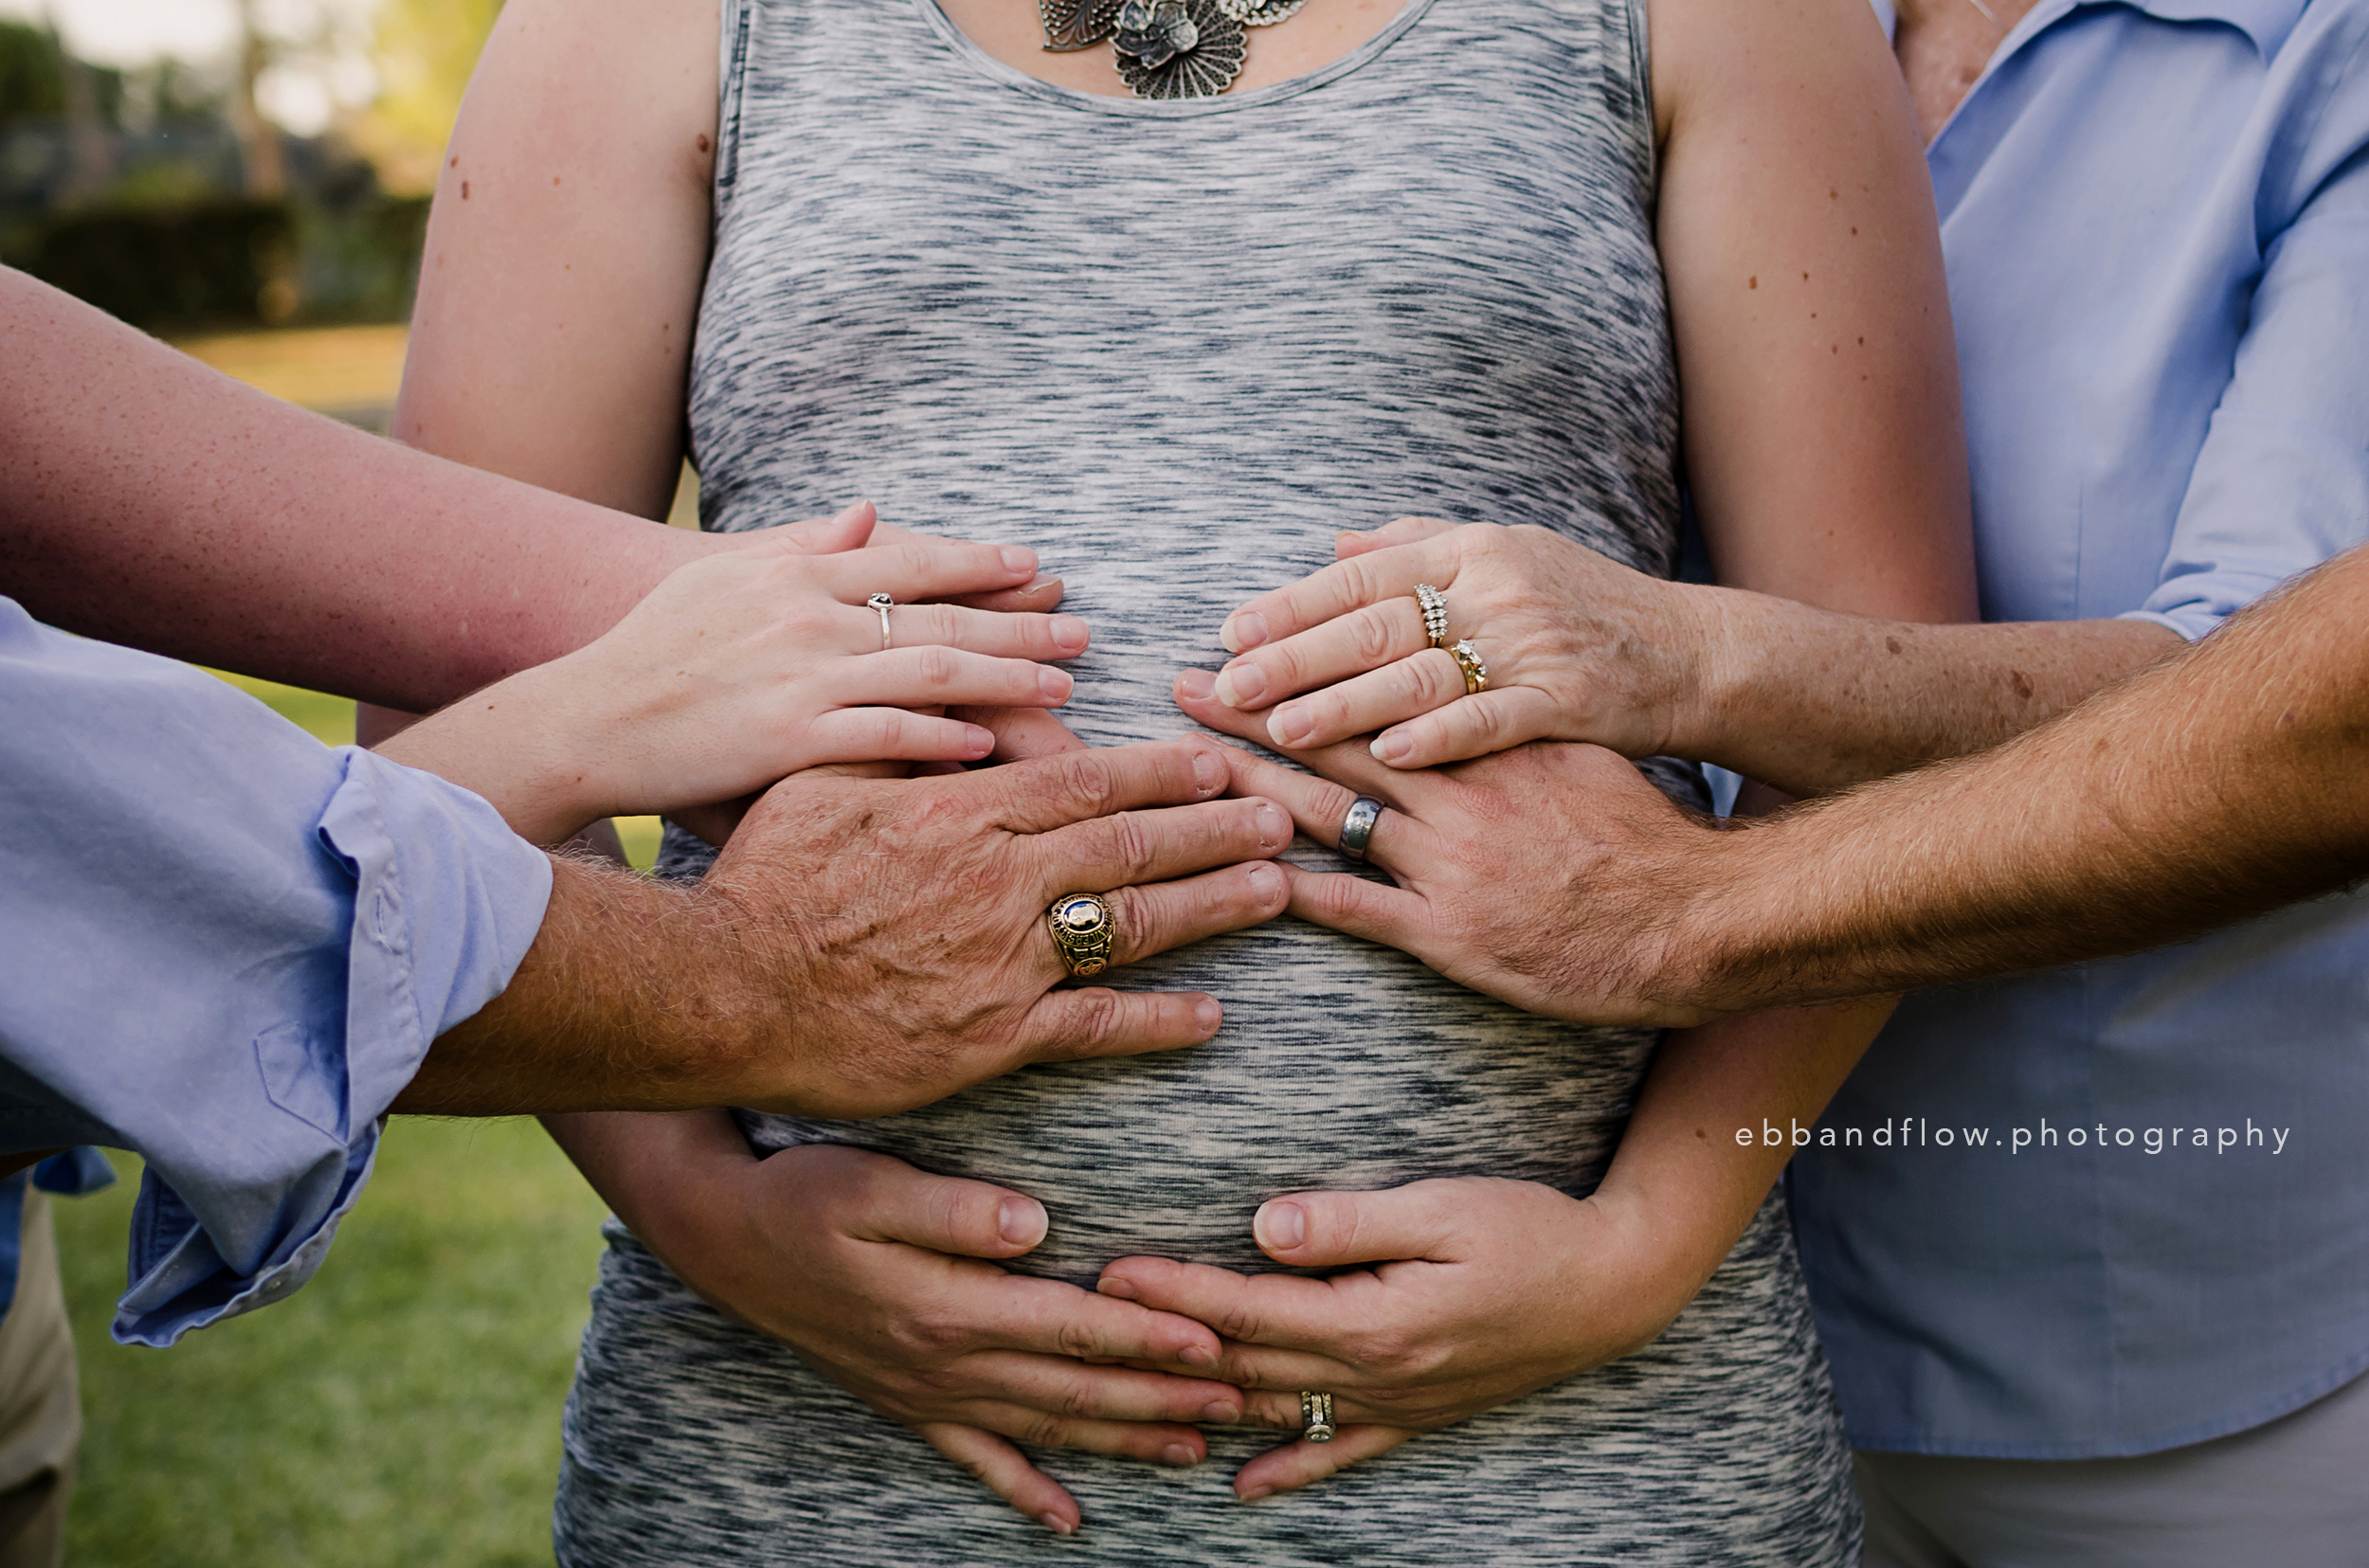 It takes a village - Maternity - Generations Family Session - Fort Pierce - Treasure Coast Family Photographer - Ebb and Flow Photography